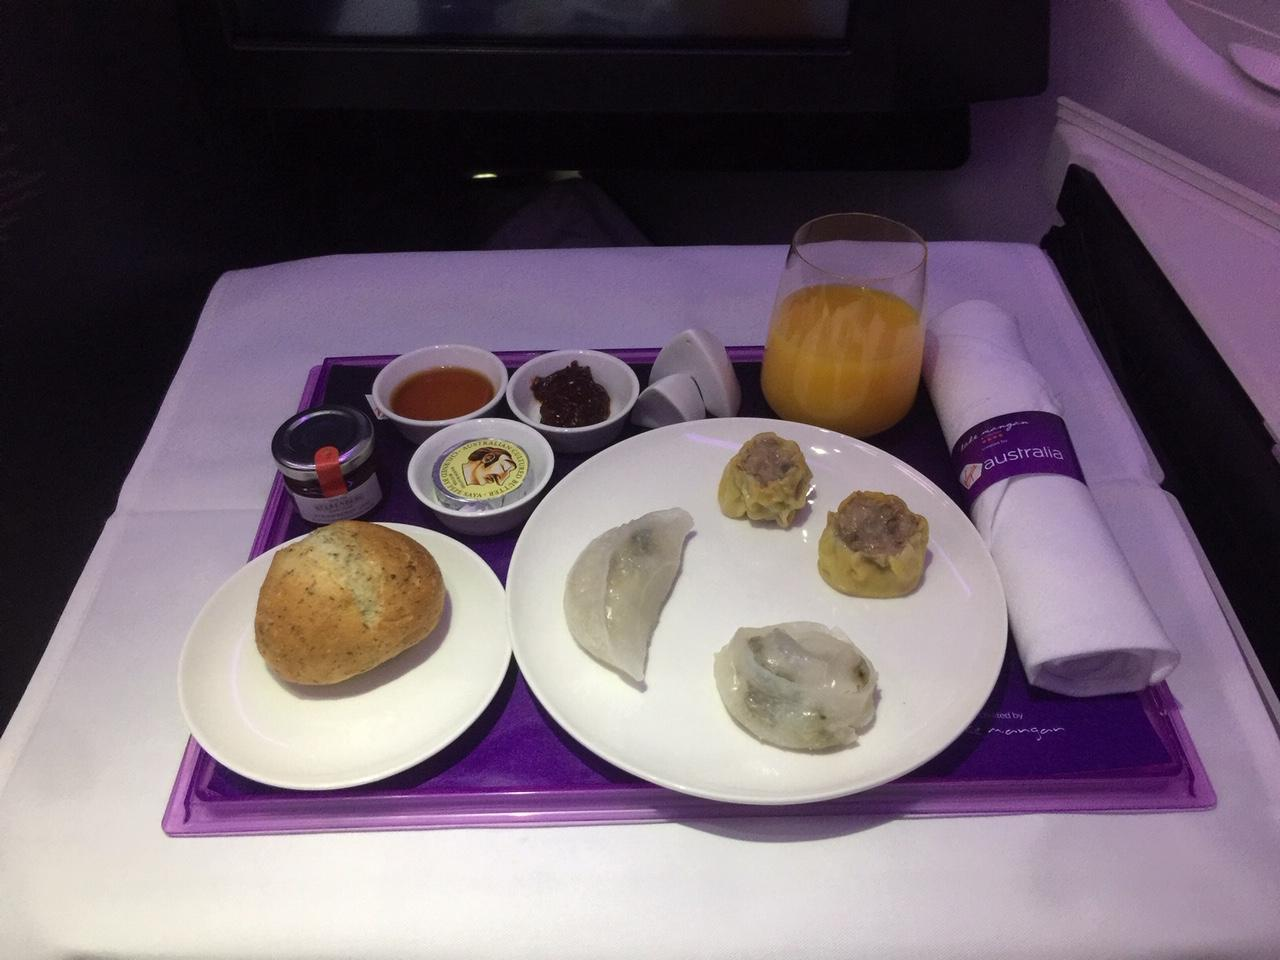 Virgin Australia Business Class pre-arrival meal